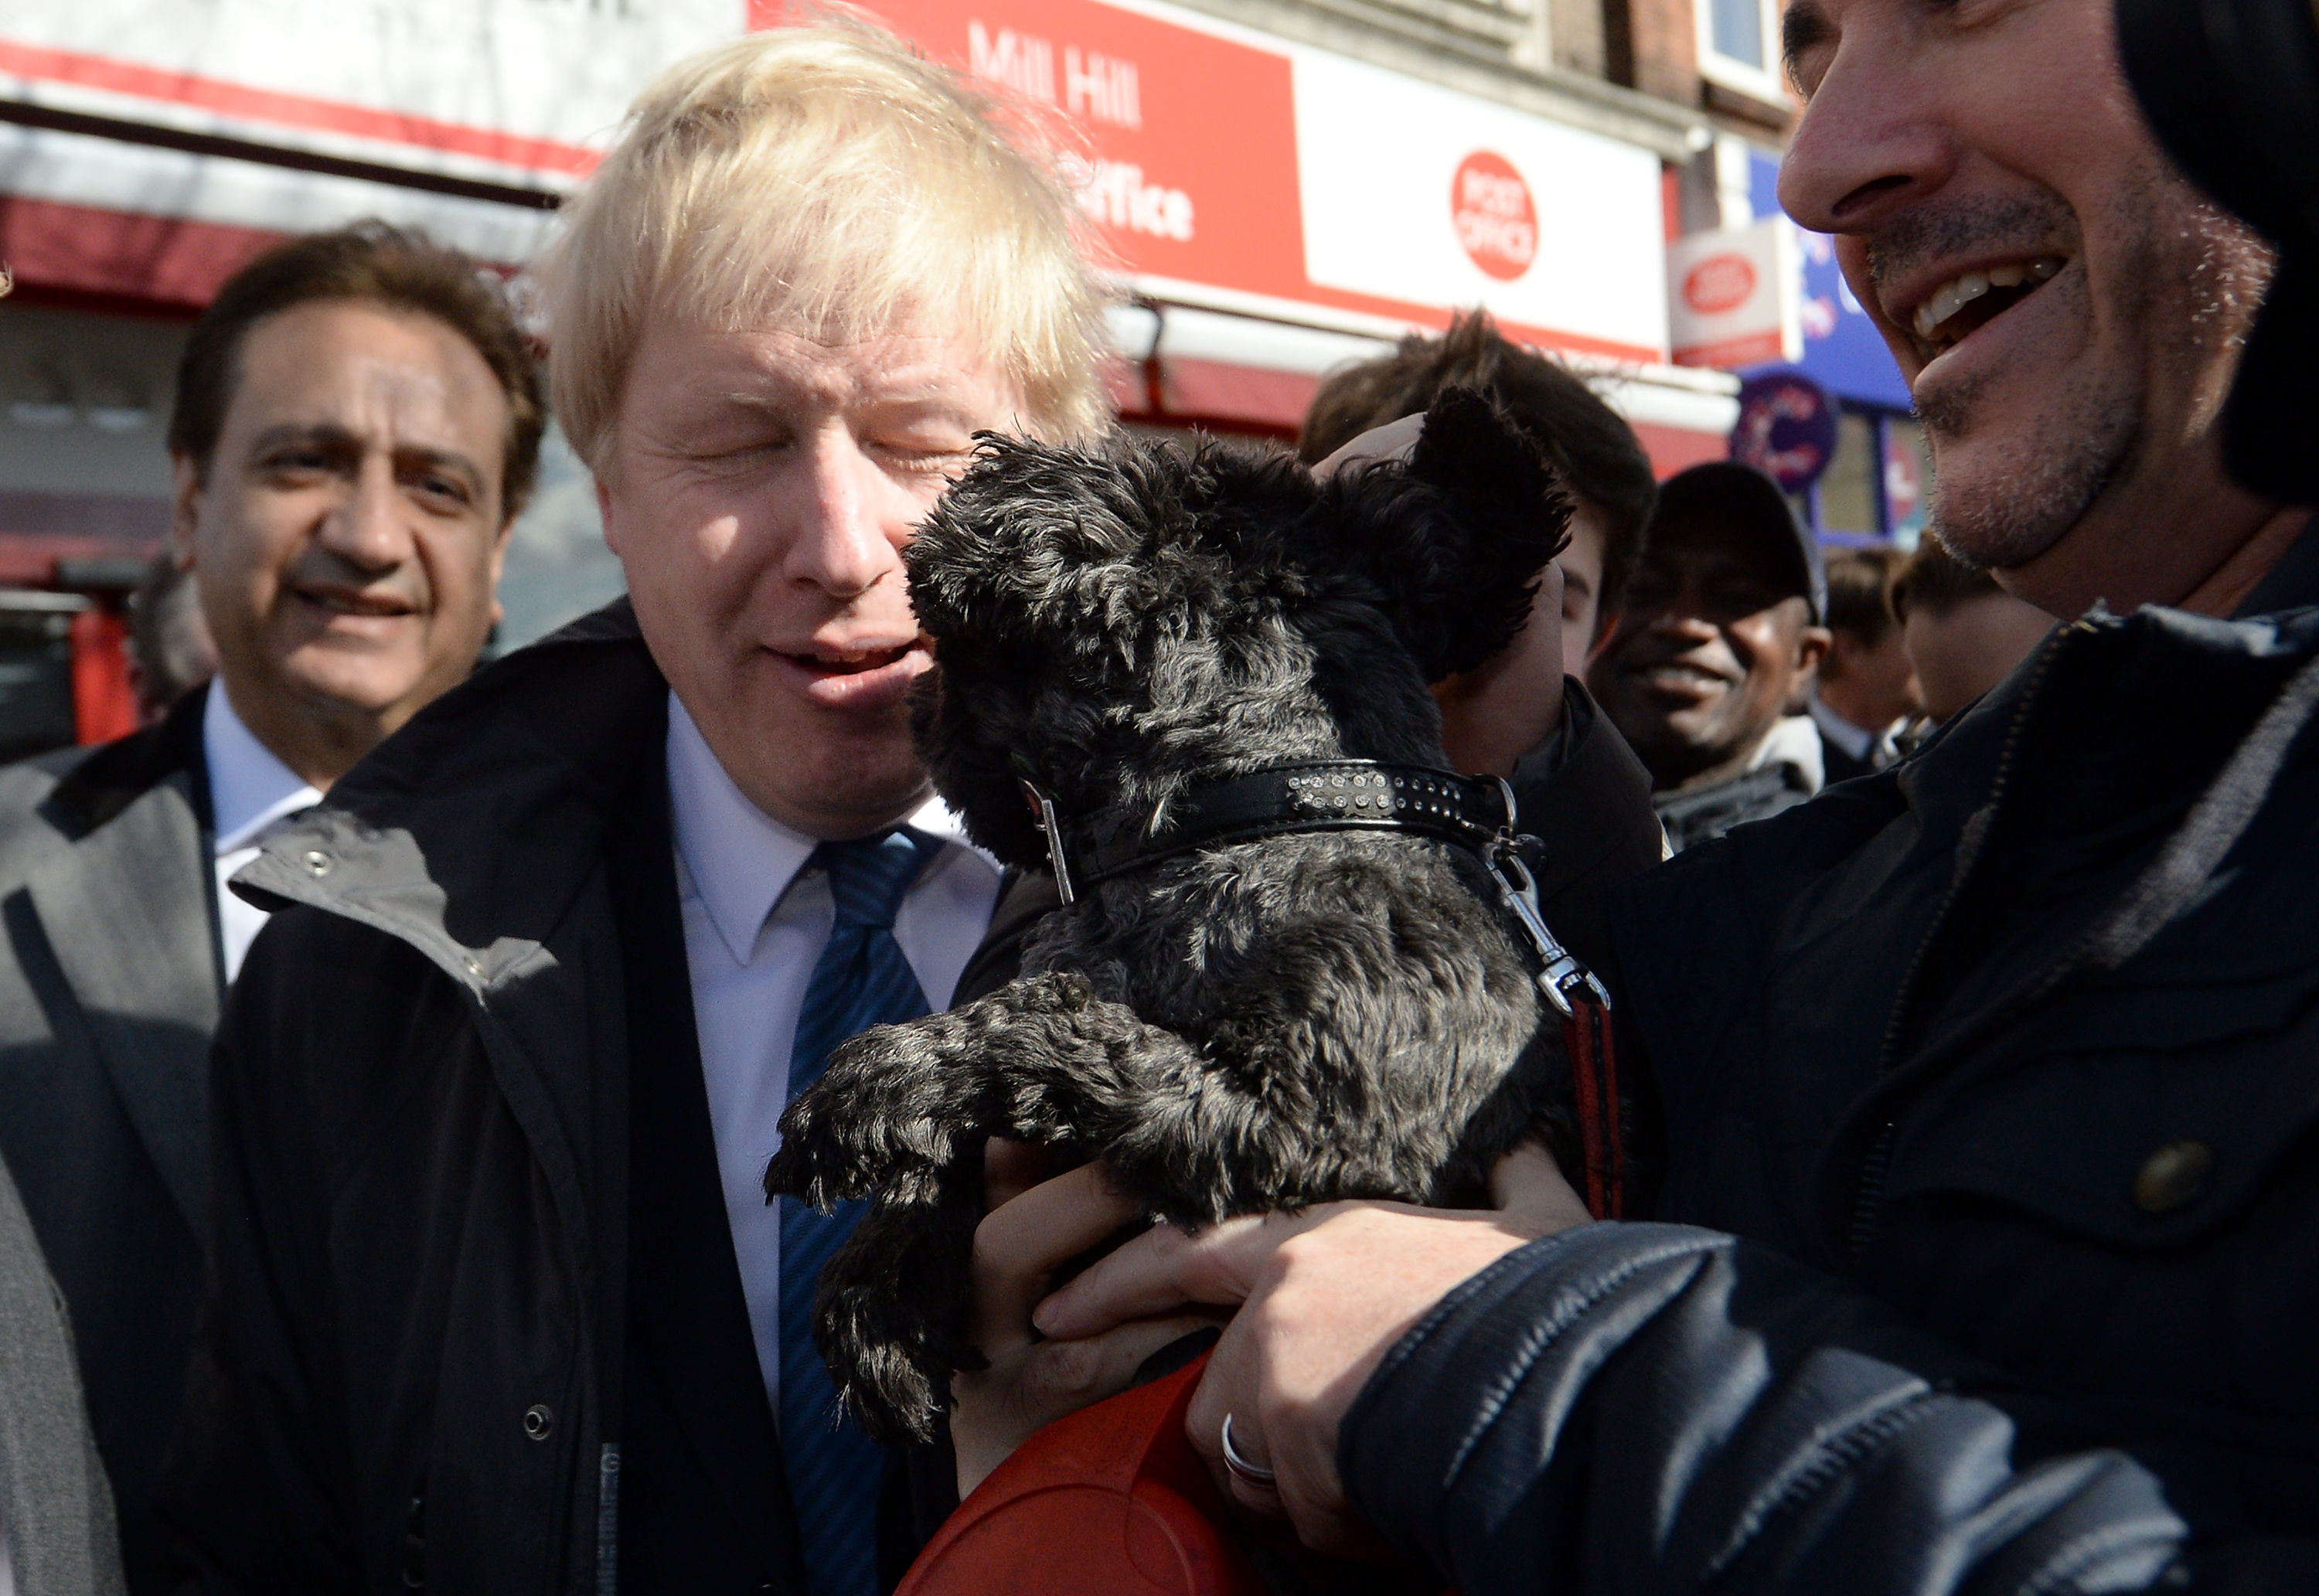 Mayor of London Boris Johnson is licked by a dog as he meets members of the public and local business owners after launching the Conservative London campaign at Hartley Hall in Mill Hill, London.